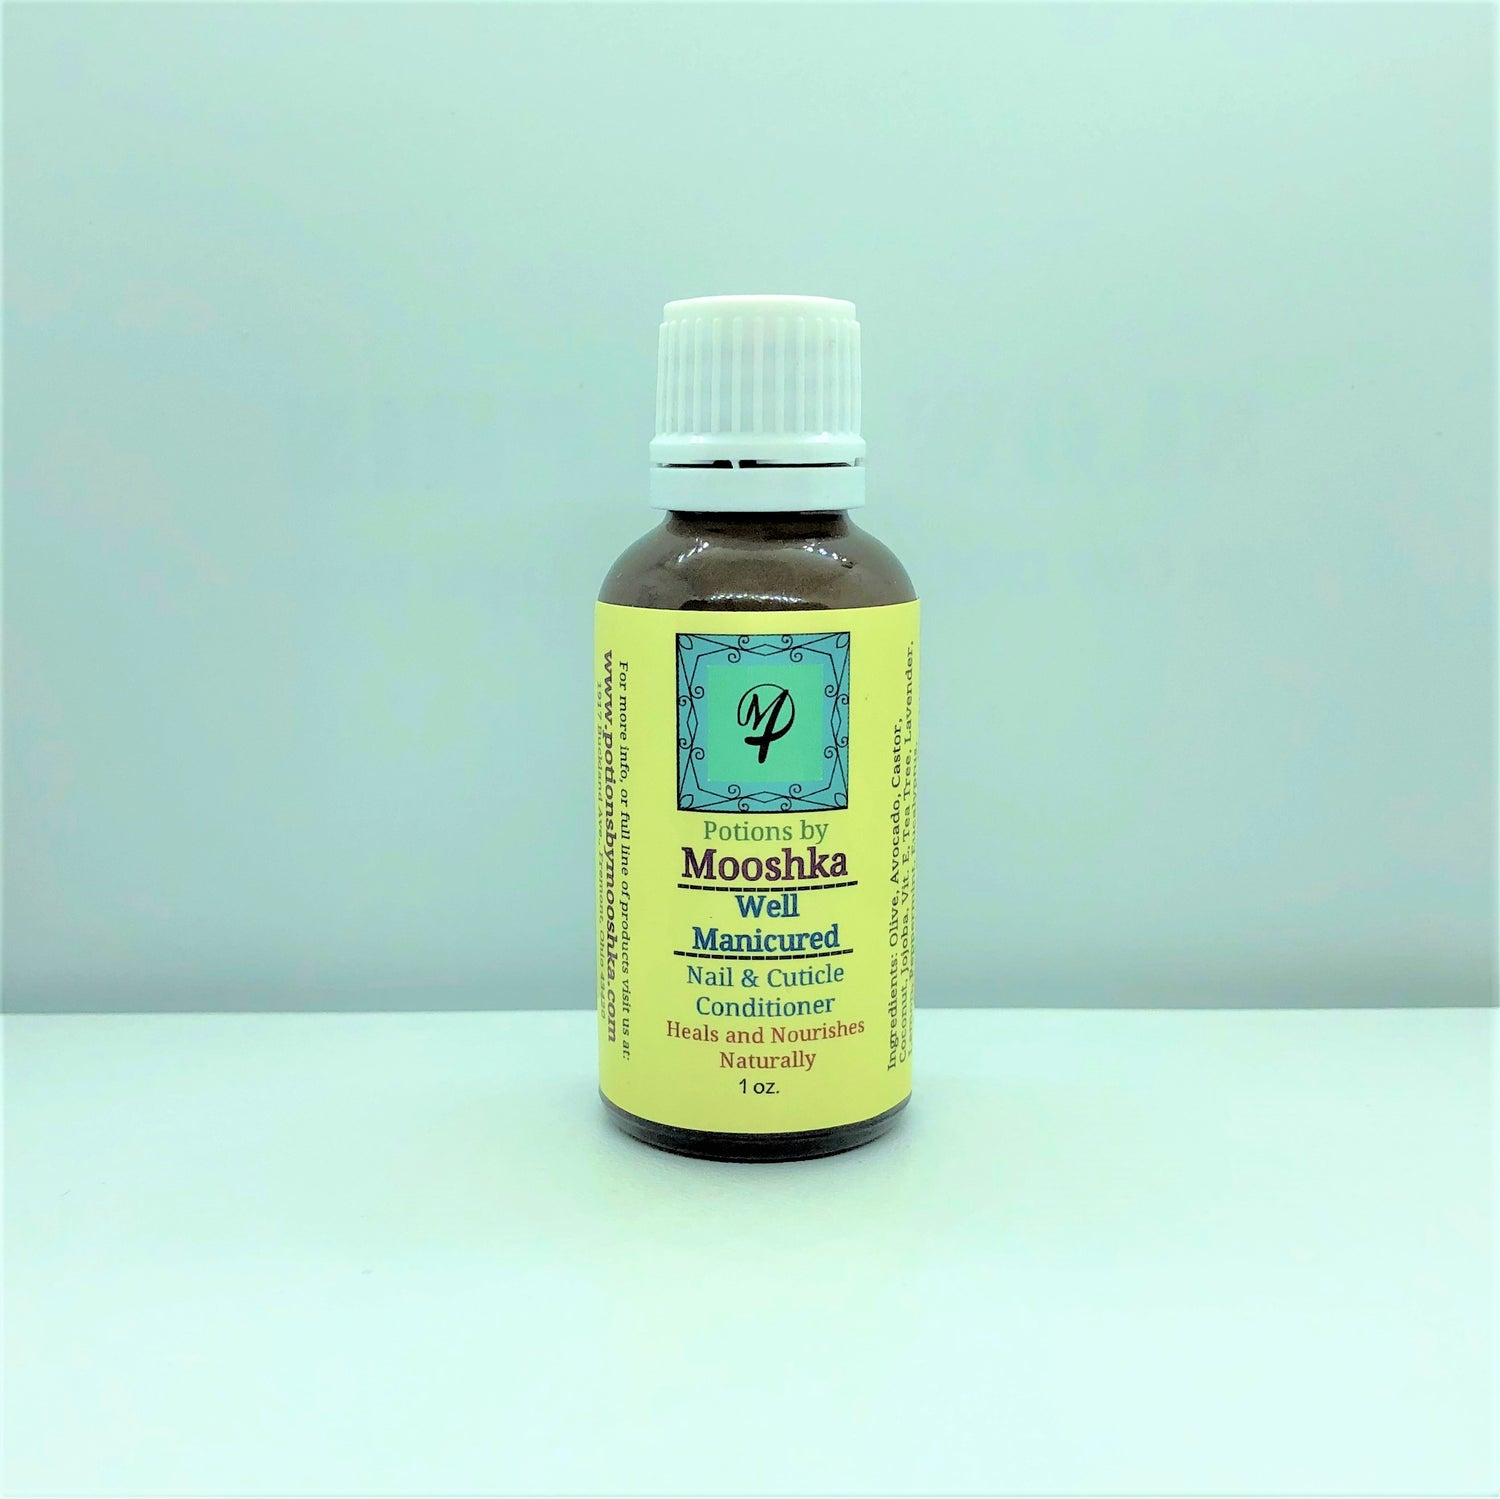 Image of Well Manicured - Naturally Nourishing Nail and Cuticle Conditioner